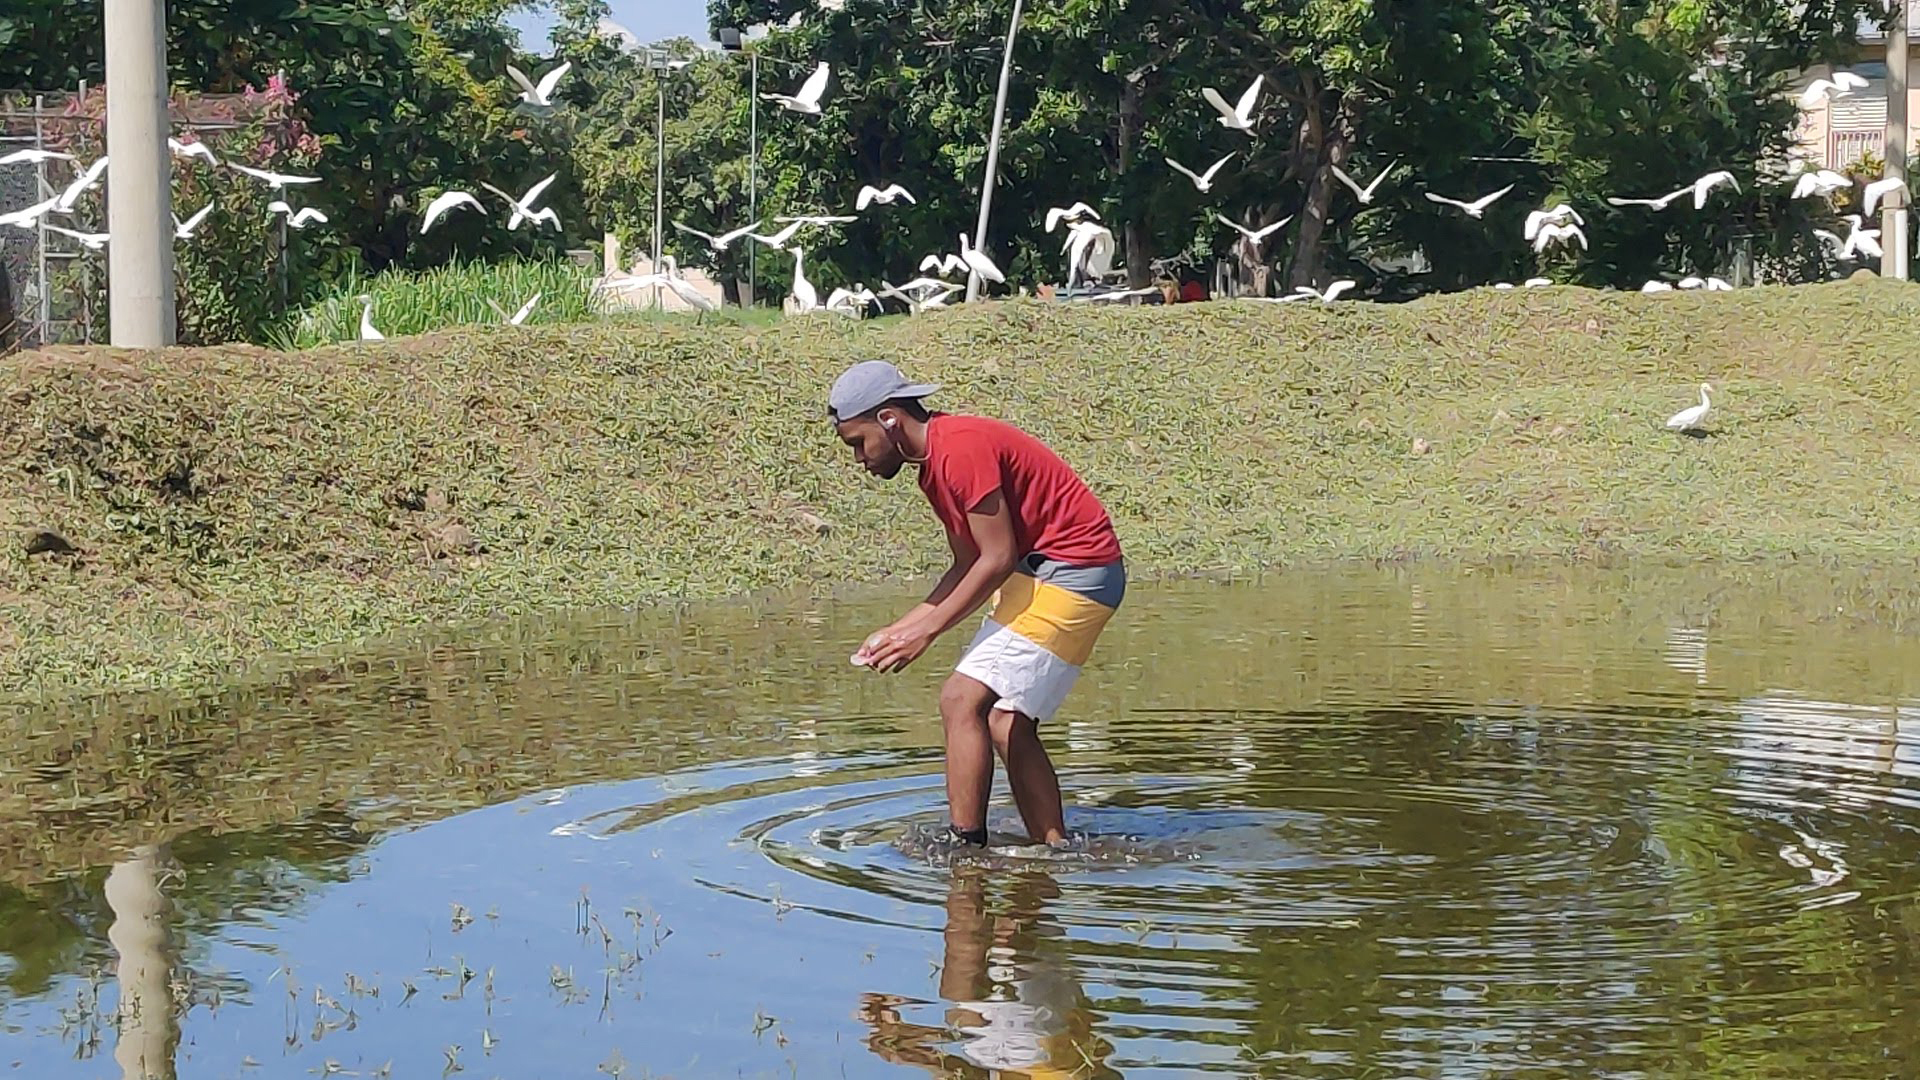 Black man in a red shirt and white, gray, and yellow shorts standing in a pond with birds flying in the background.